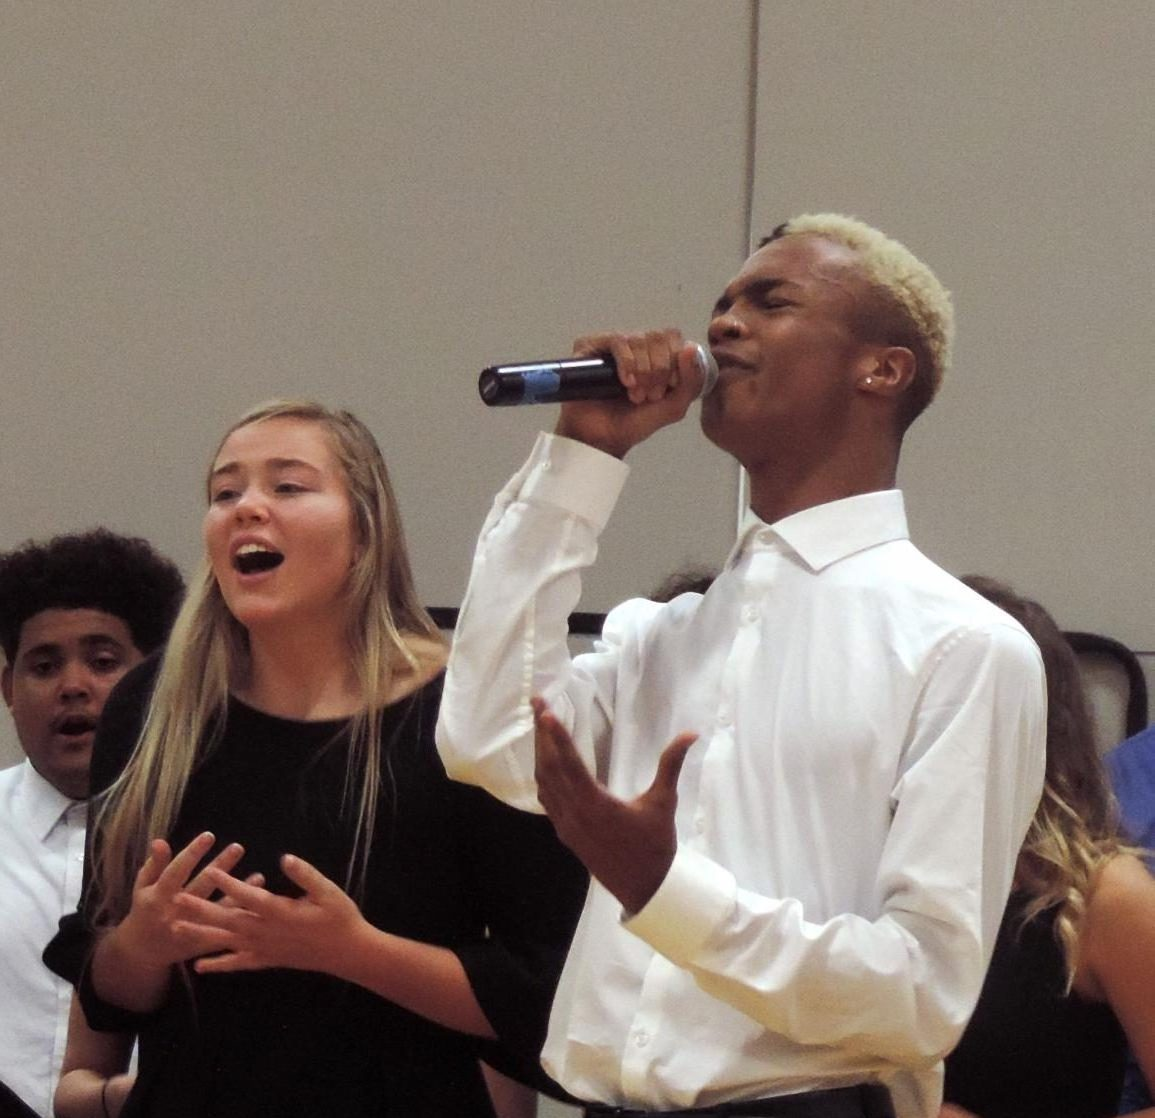 Senior Jaylon Gunn sings his own solo with the North Choir's Valholla at the North Choir Fall Concert on Oct.10. He and the Valholla sang If I Ever Fall in Love as their individual concert piece.